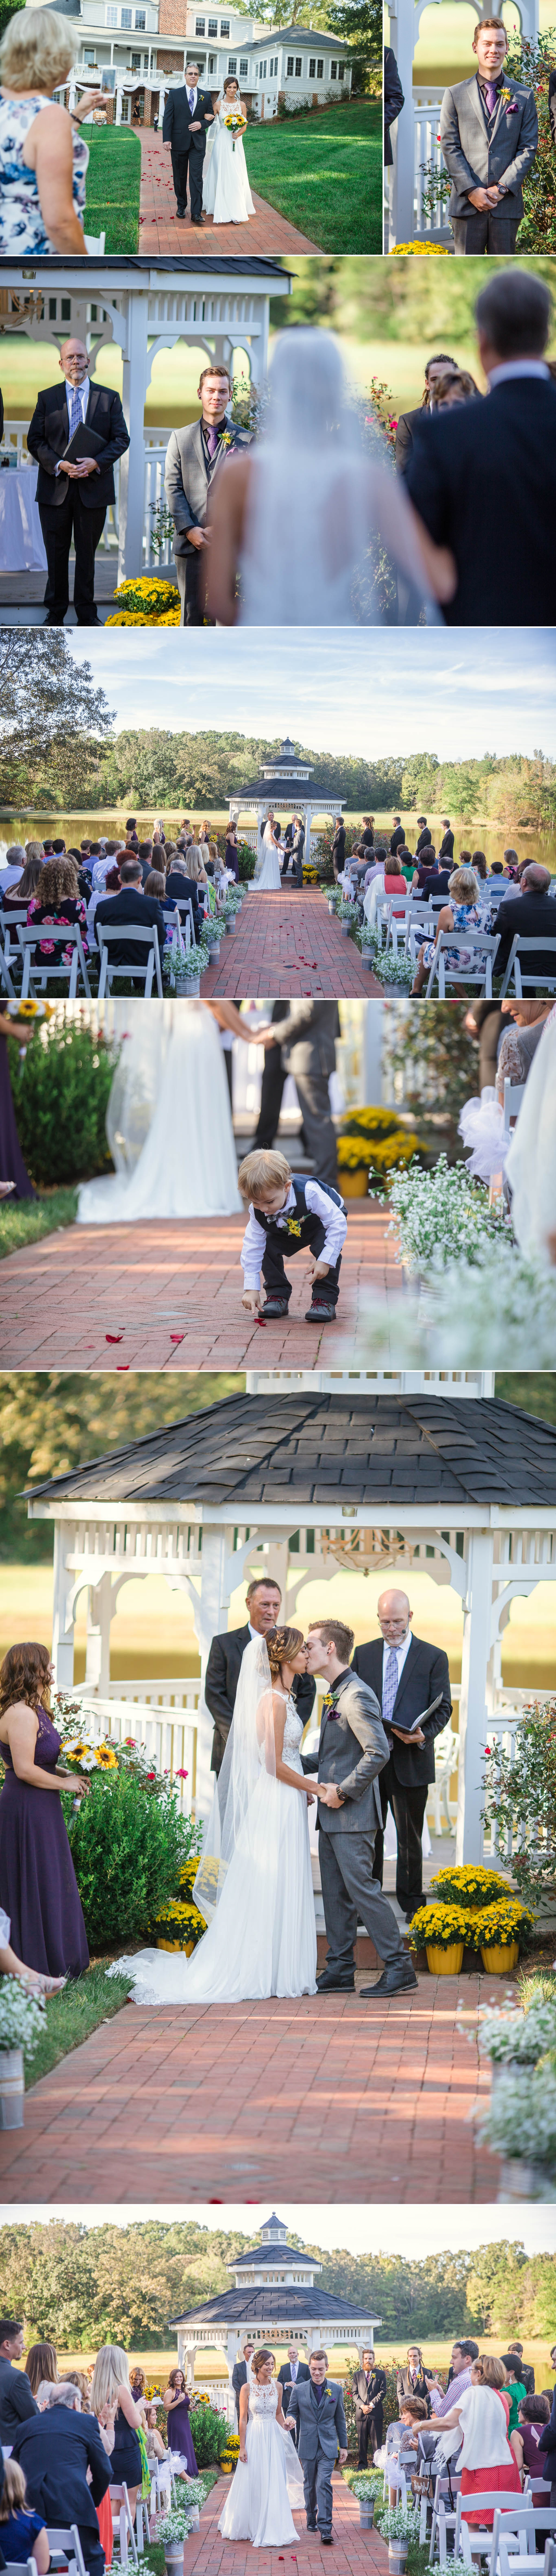 Wedding Ceremony - Brittany + Greg - The Groomes Place - Charlotte, NC Wedding Photographer